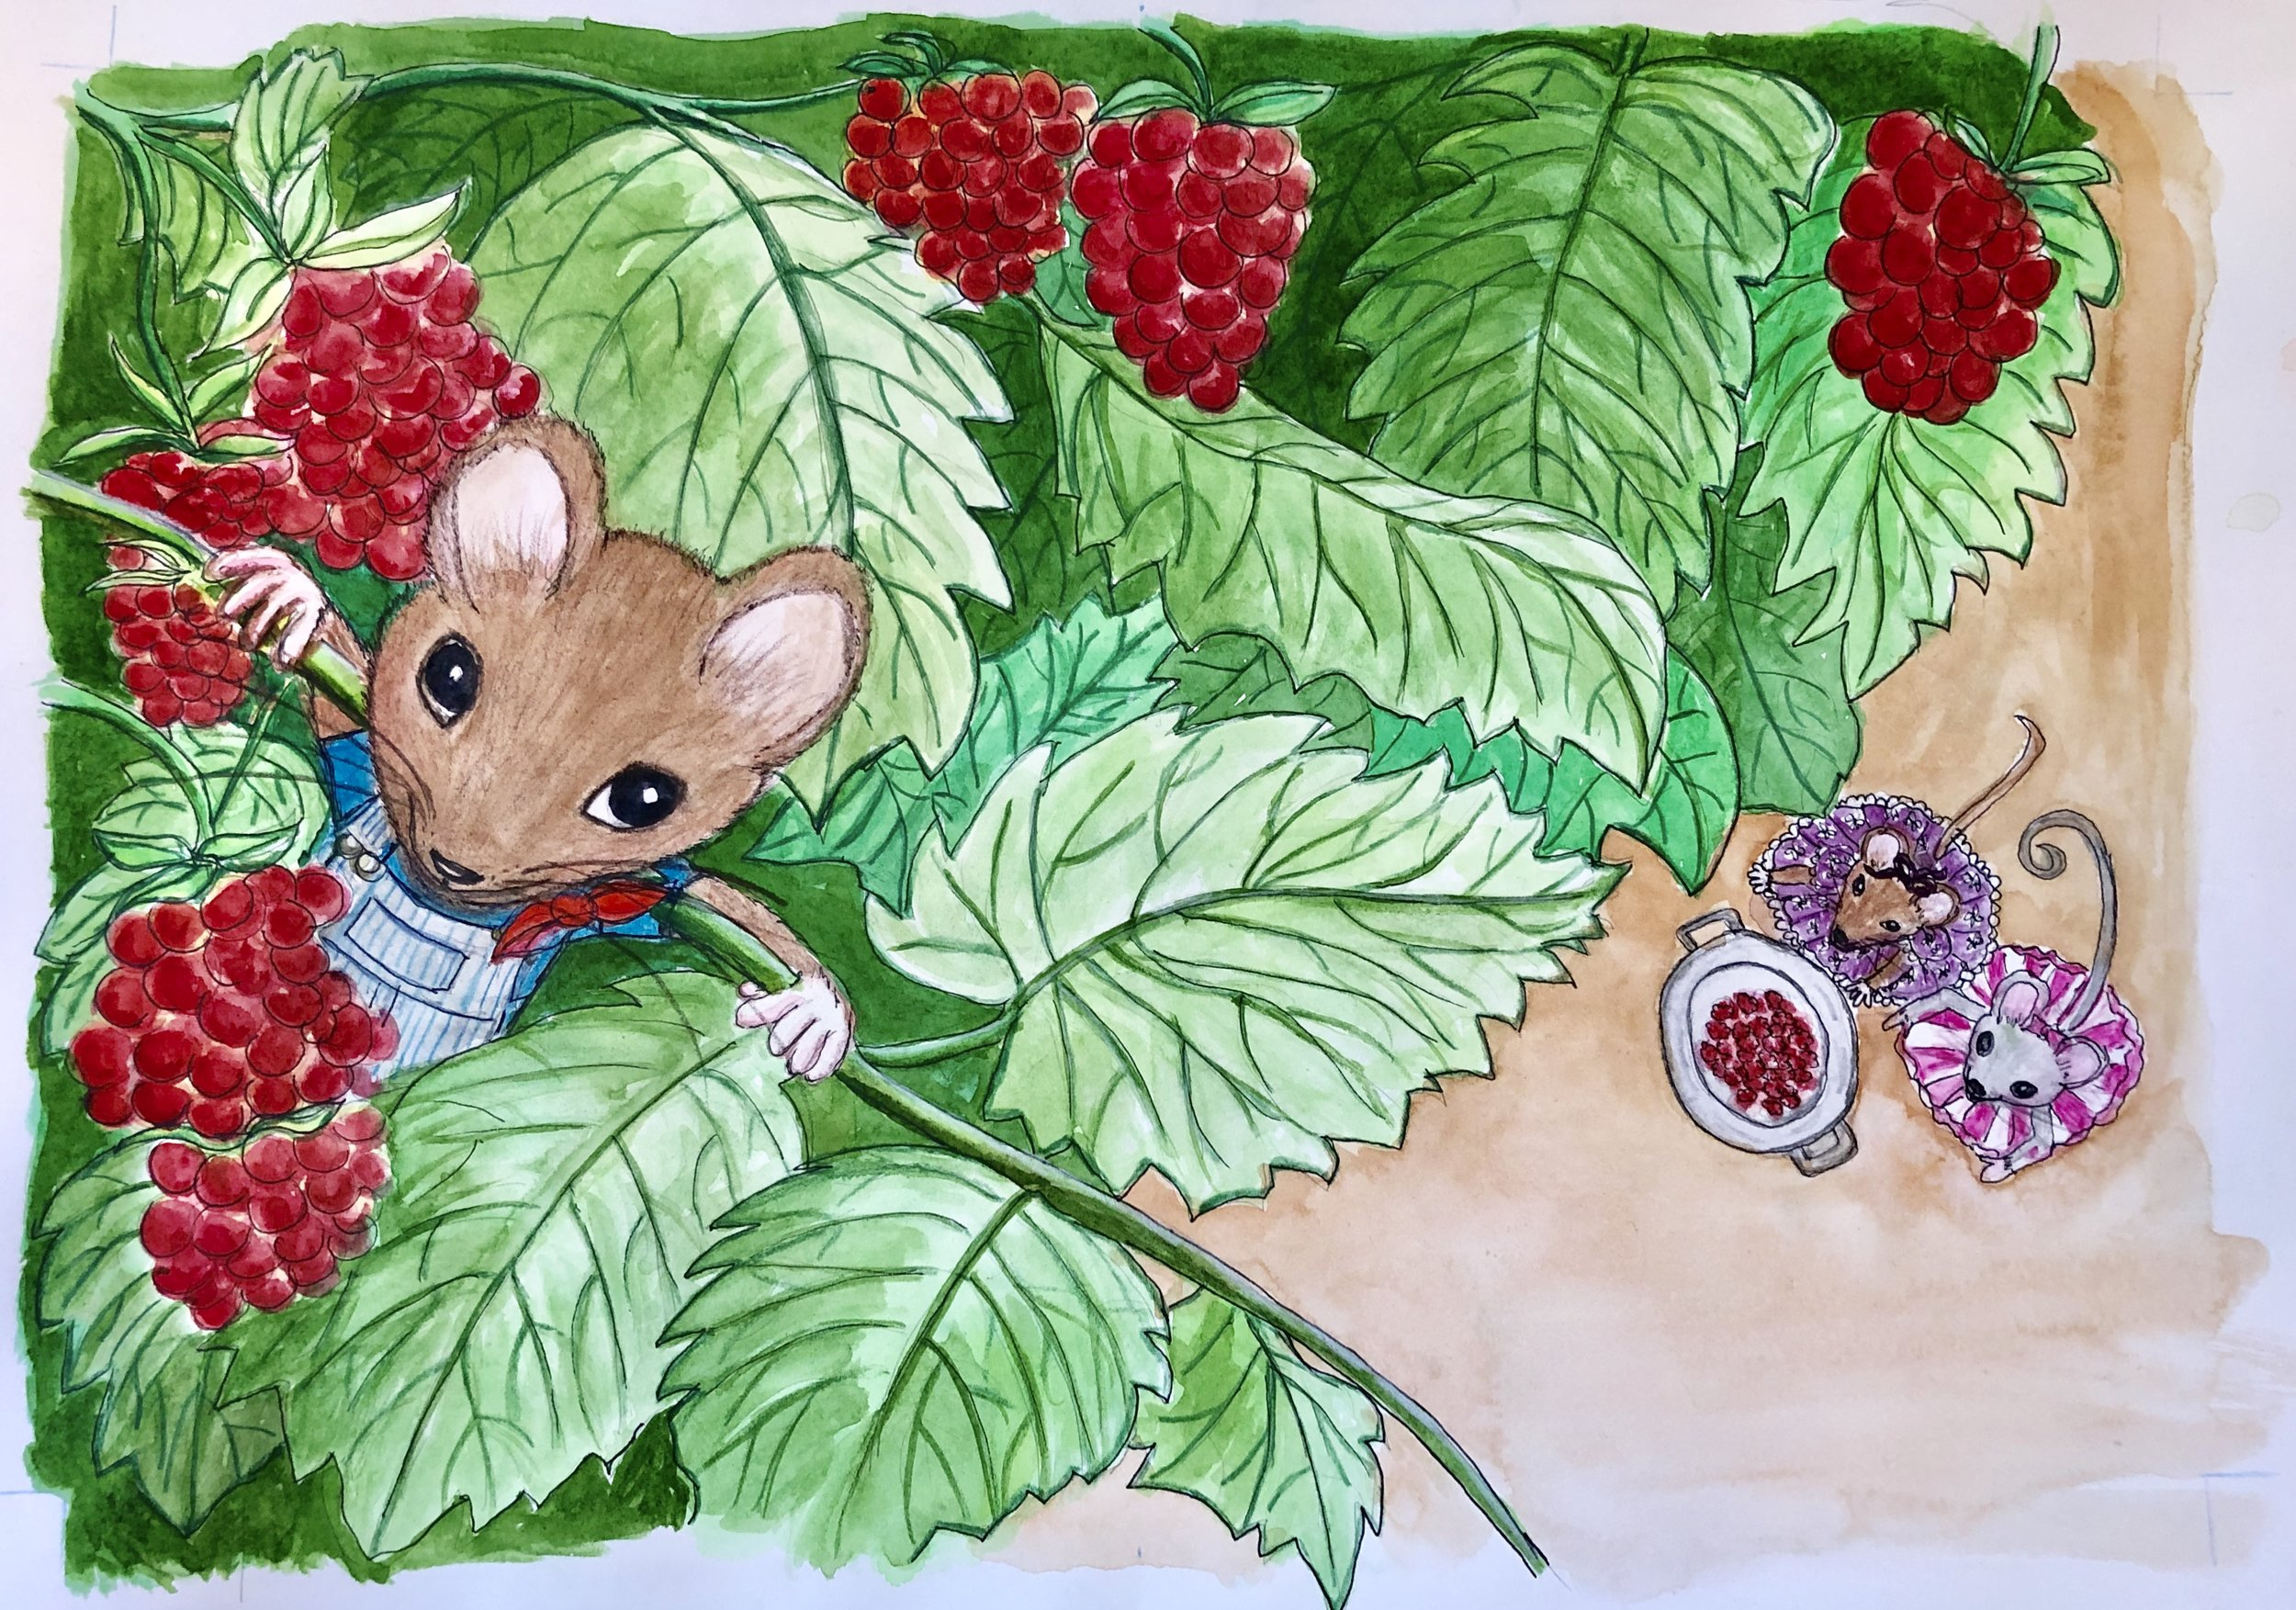 Morely is so adventureous and thinks that he won't be seen by the crows circling over the garden!  He's just about finished picking all raspberries!  What will he do next?